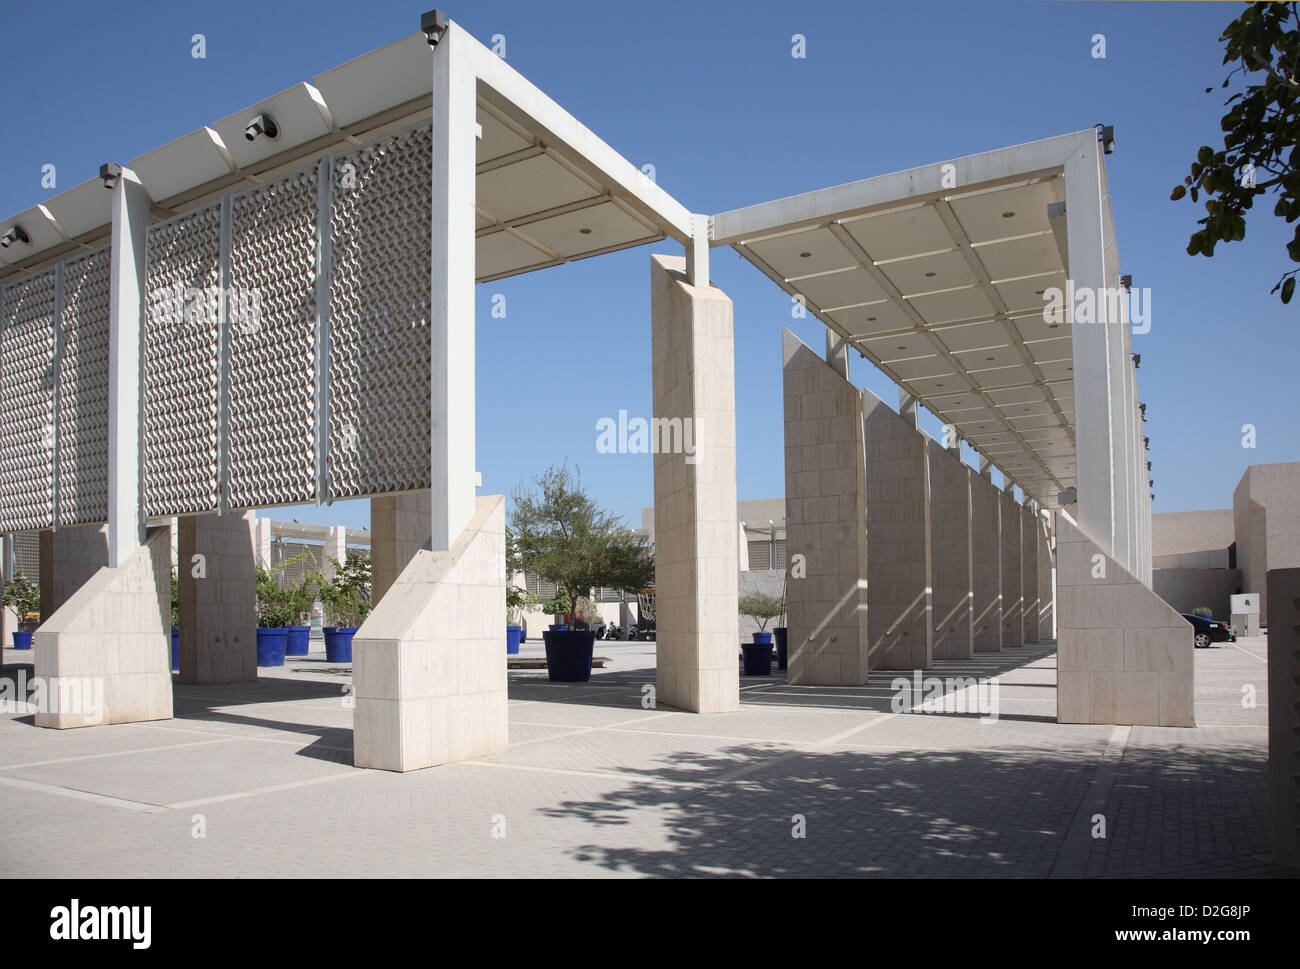 The Bahrain National Museum - entrance courtyard - Stock Image